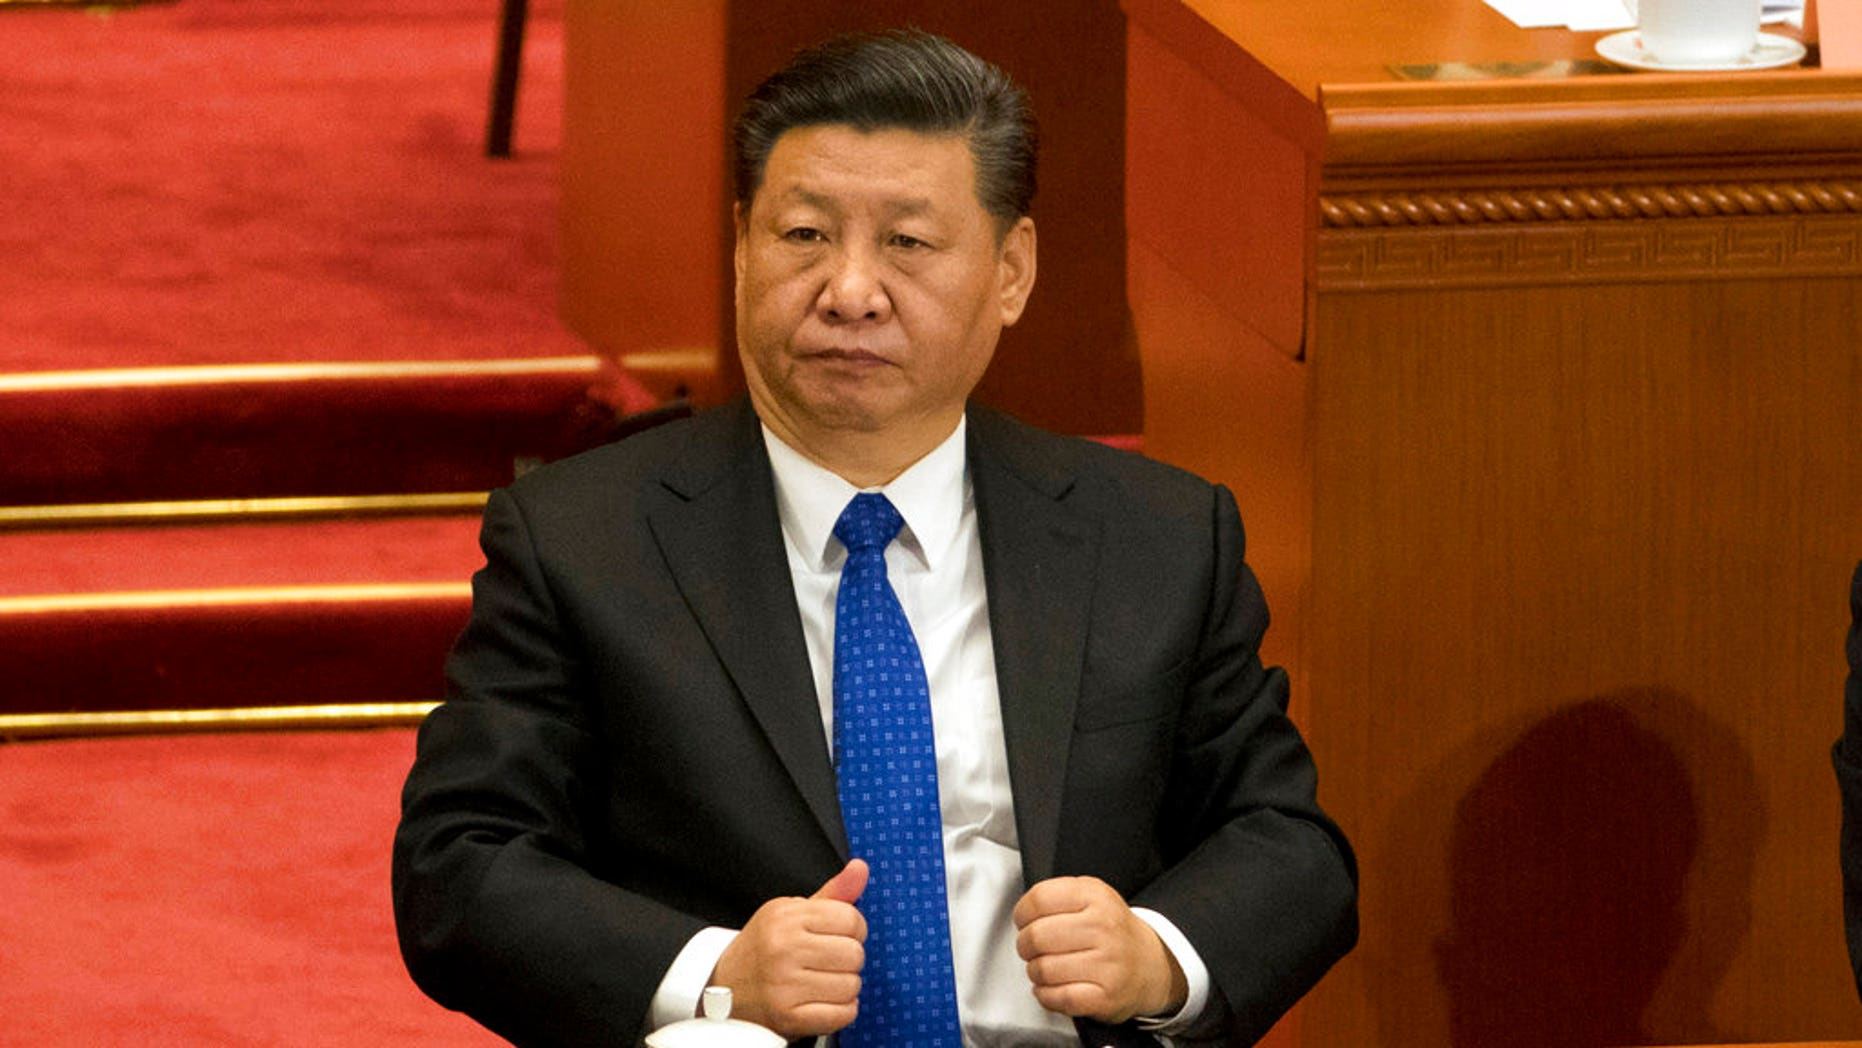 Chinese President Xi Jinping attends the opening session of the Chinese People's Political Consultative Conference in Beijing's Great Hall of the People.